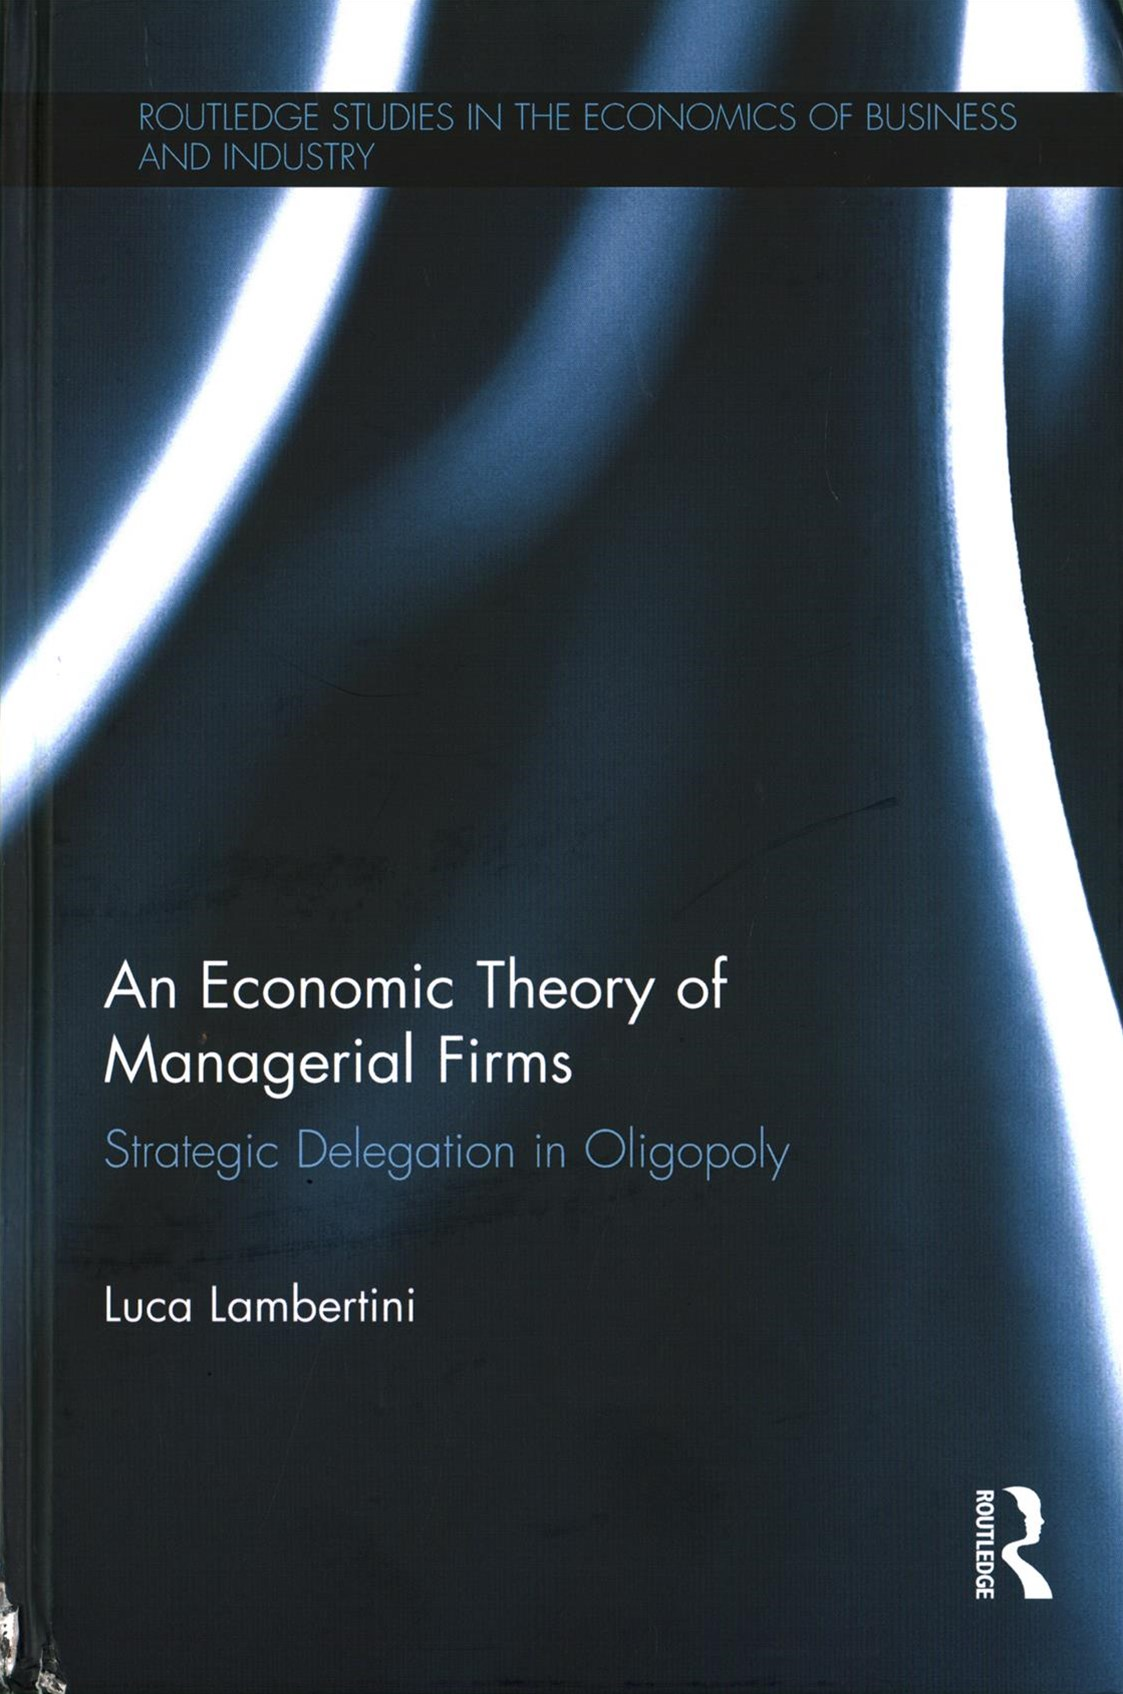 Economic Theory of Managerial Firms